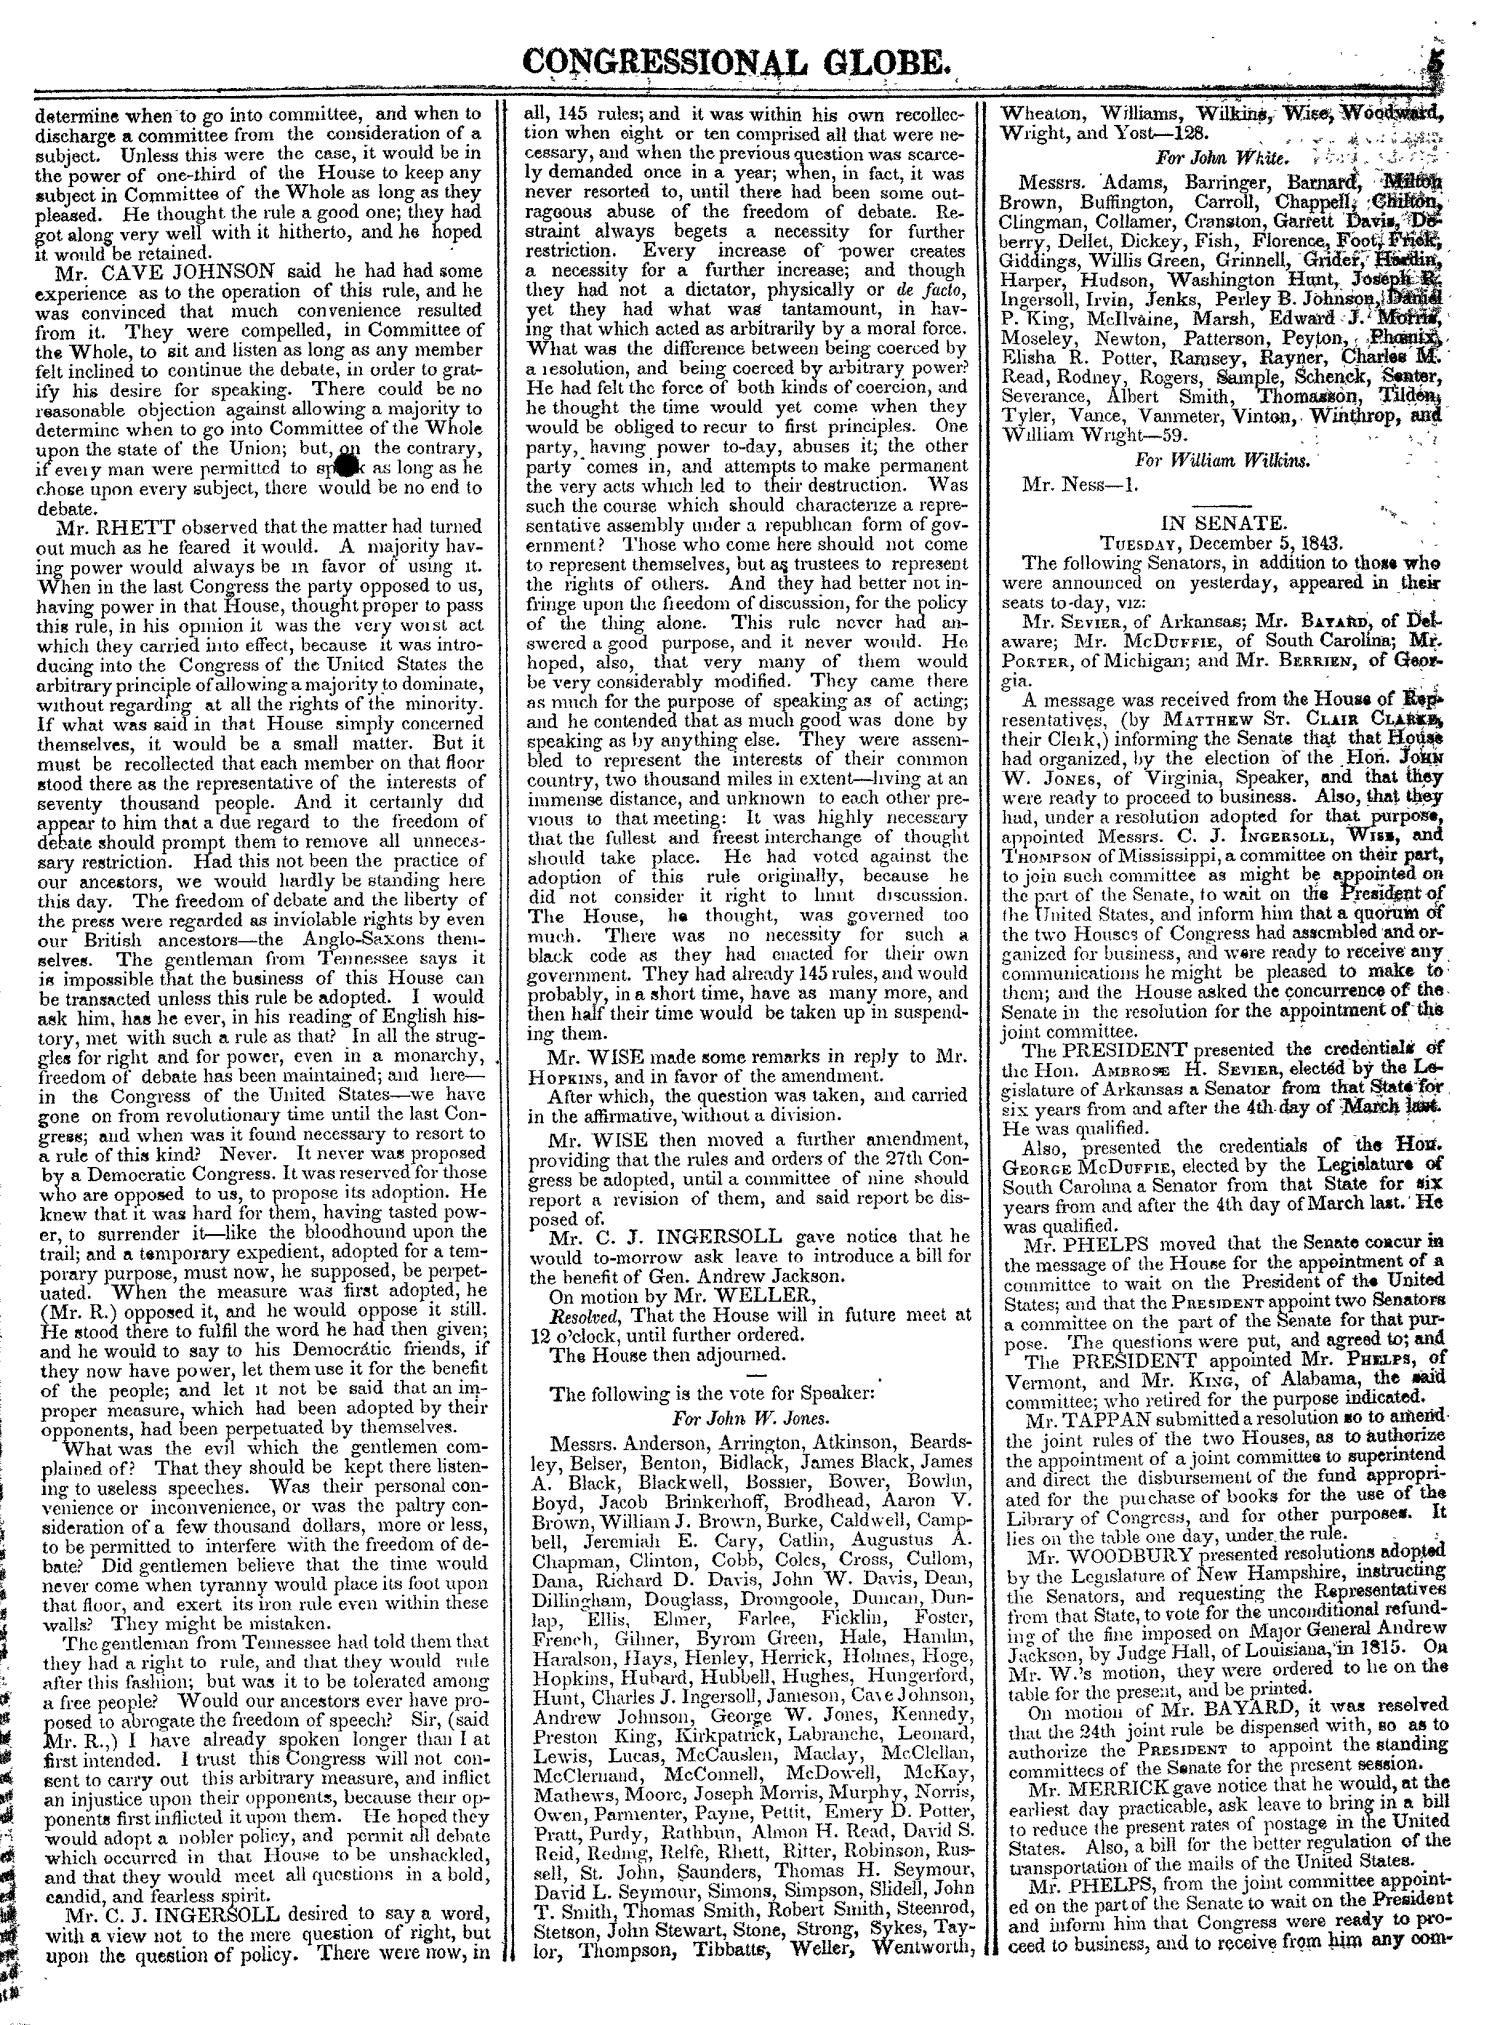 The Congressional Globe, Volume 13, Part 1: Twenty-Eighth Congress, First Session                                                                                                      5